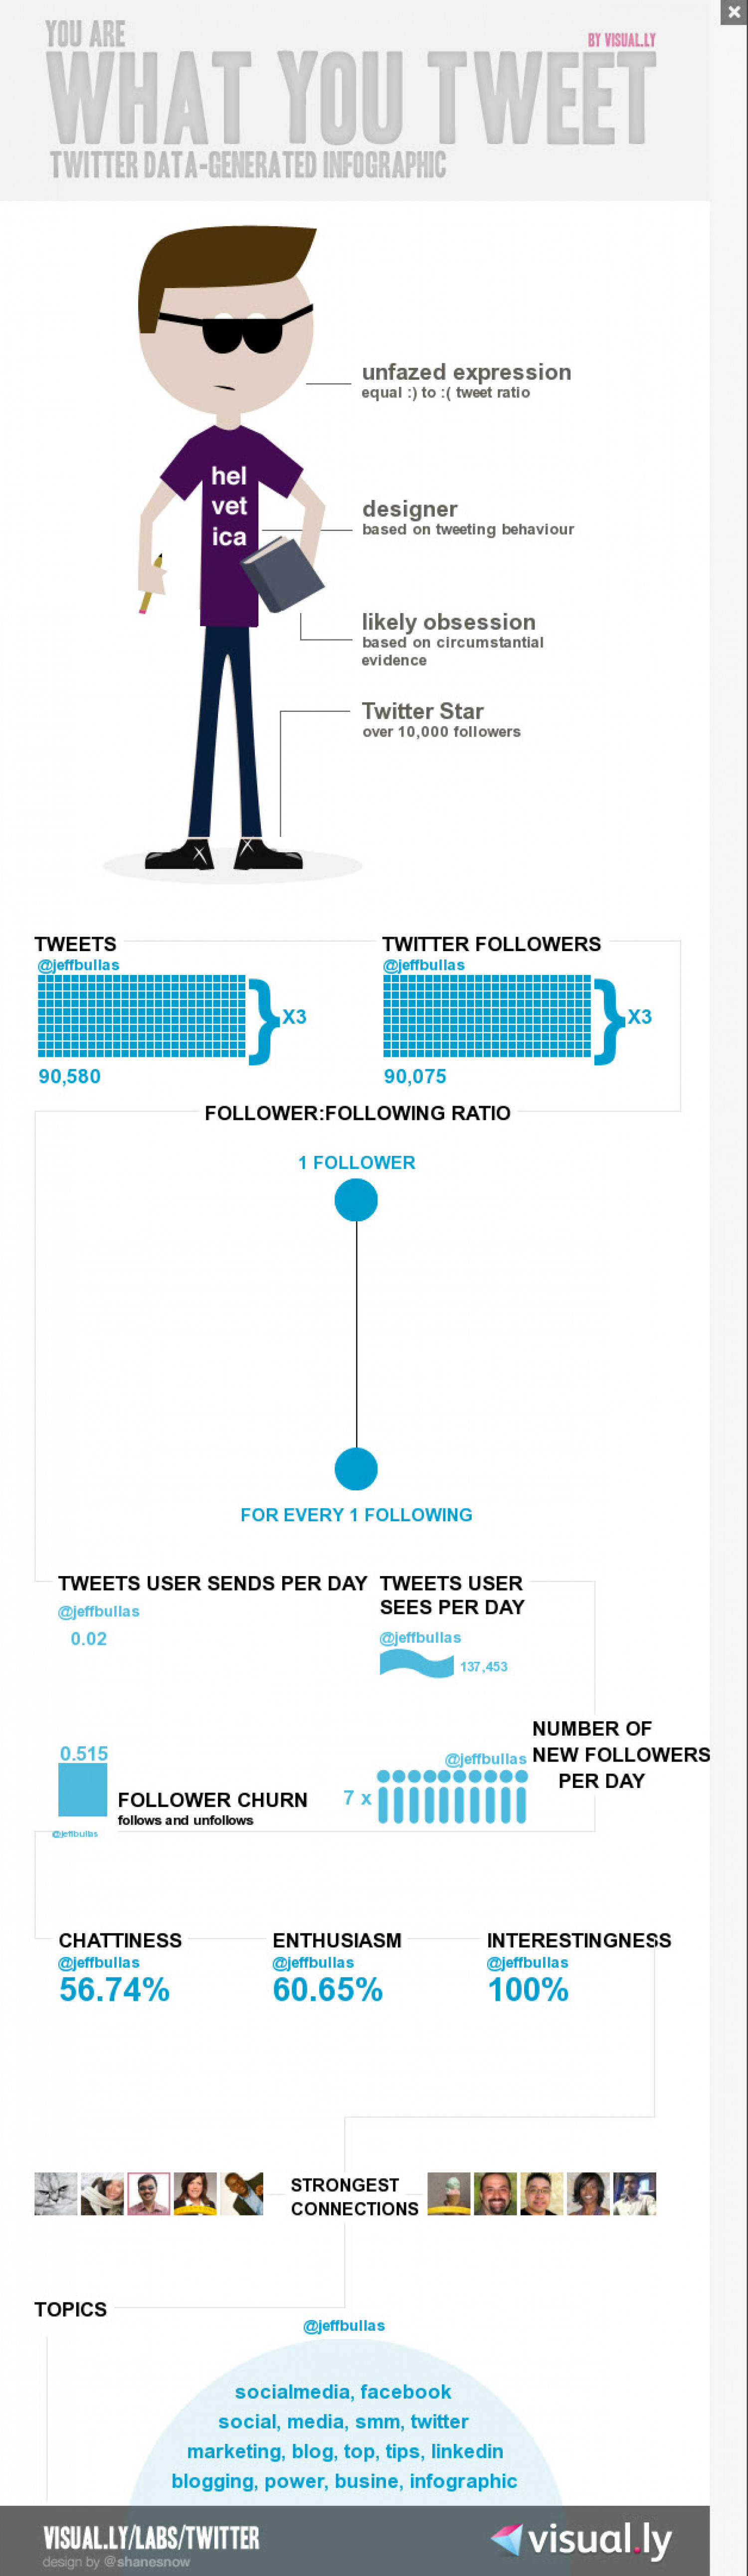 How to Make an Infographic of your Twitter Profile in 30 Seconds Infographic